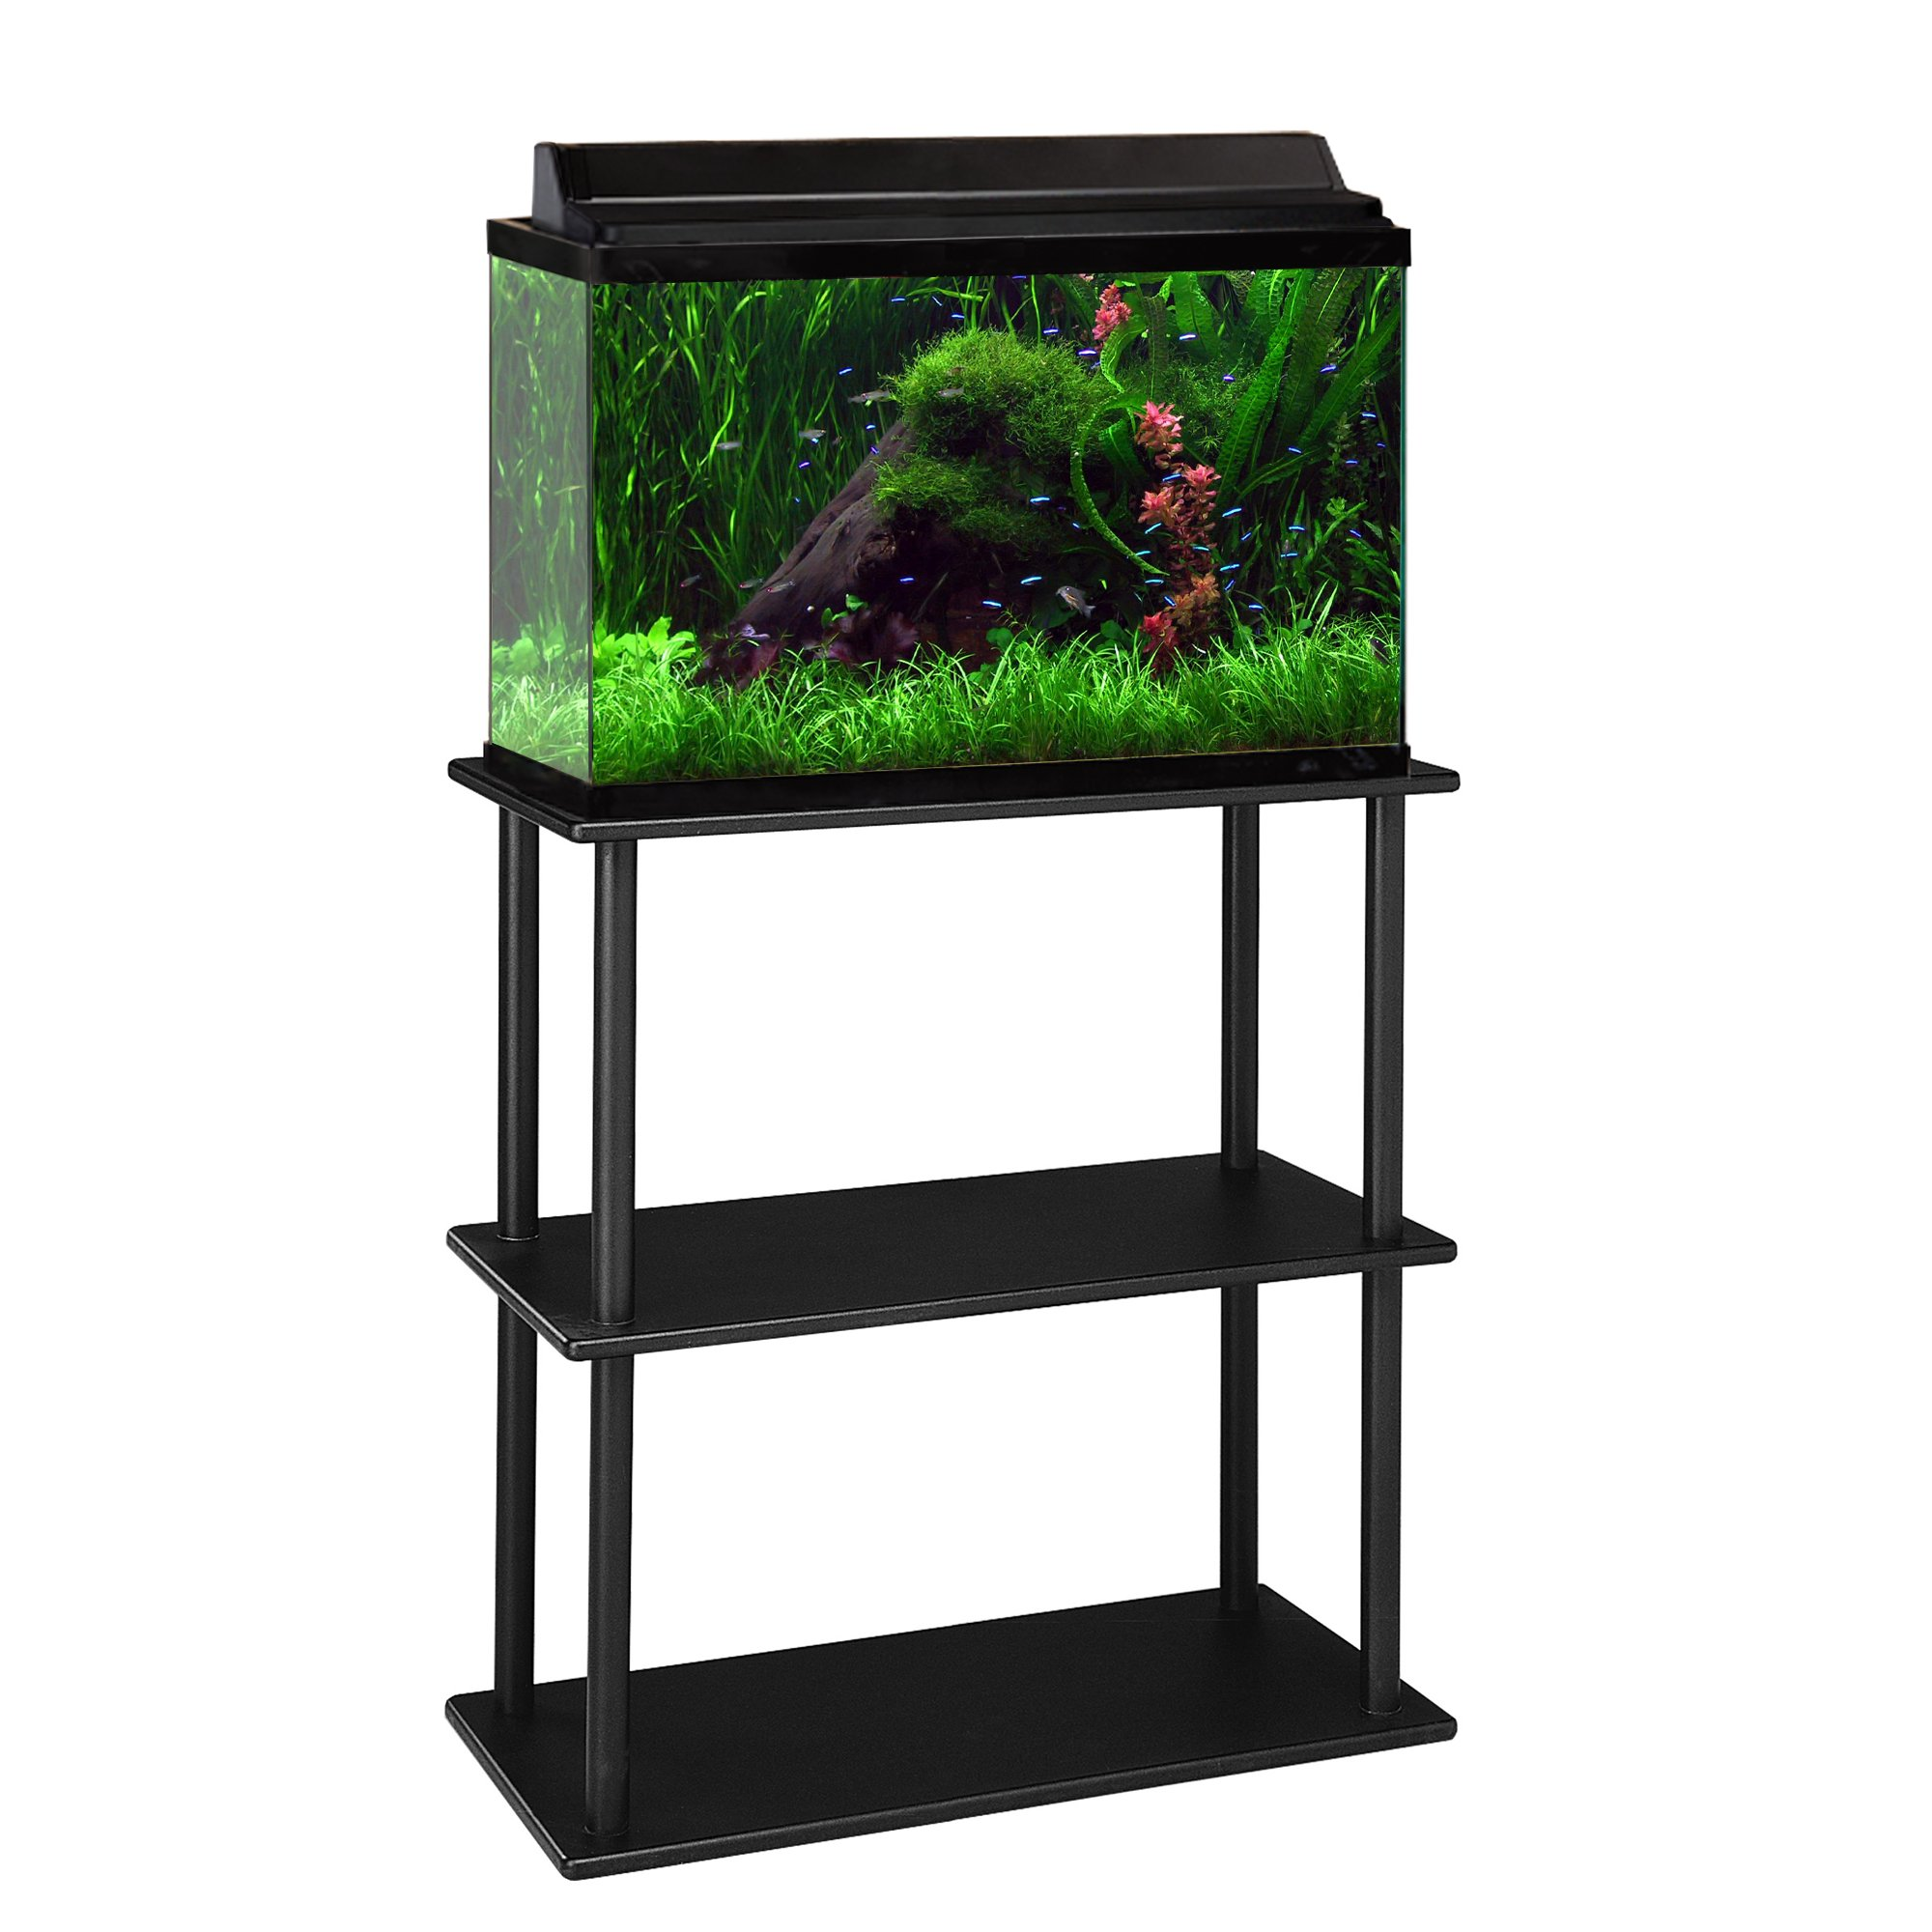 Aquatic fundamentals 10 20 gallon aquarium stand with for 50 gallon fish tank dimensions